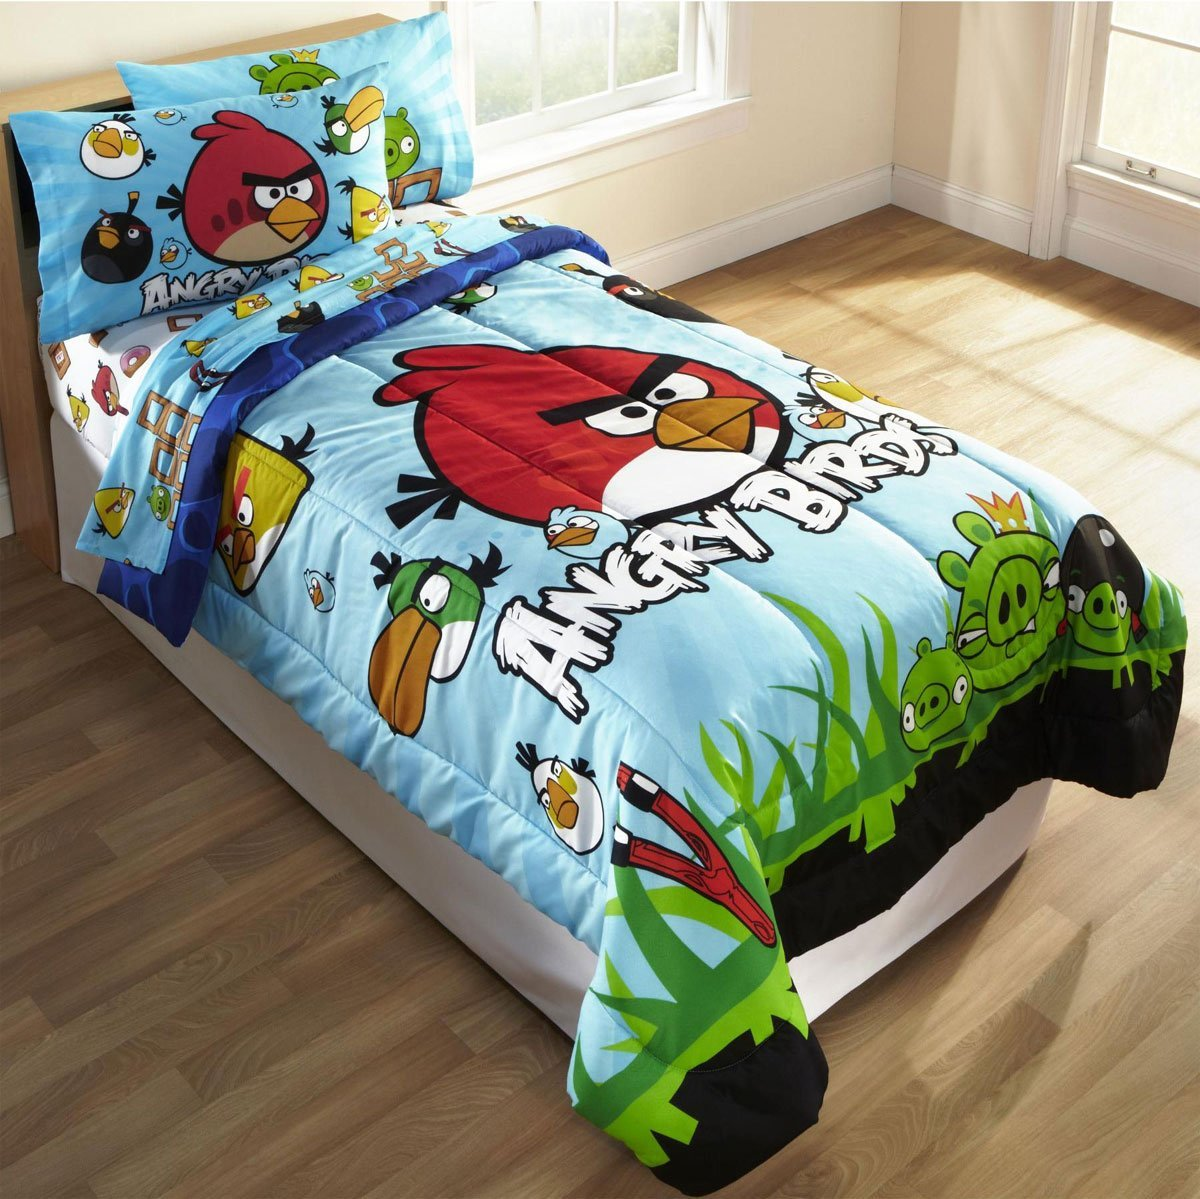 Home Furniture Online Shop And Sale: Angry Birds Twin